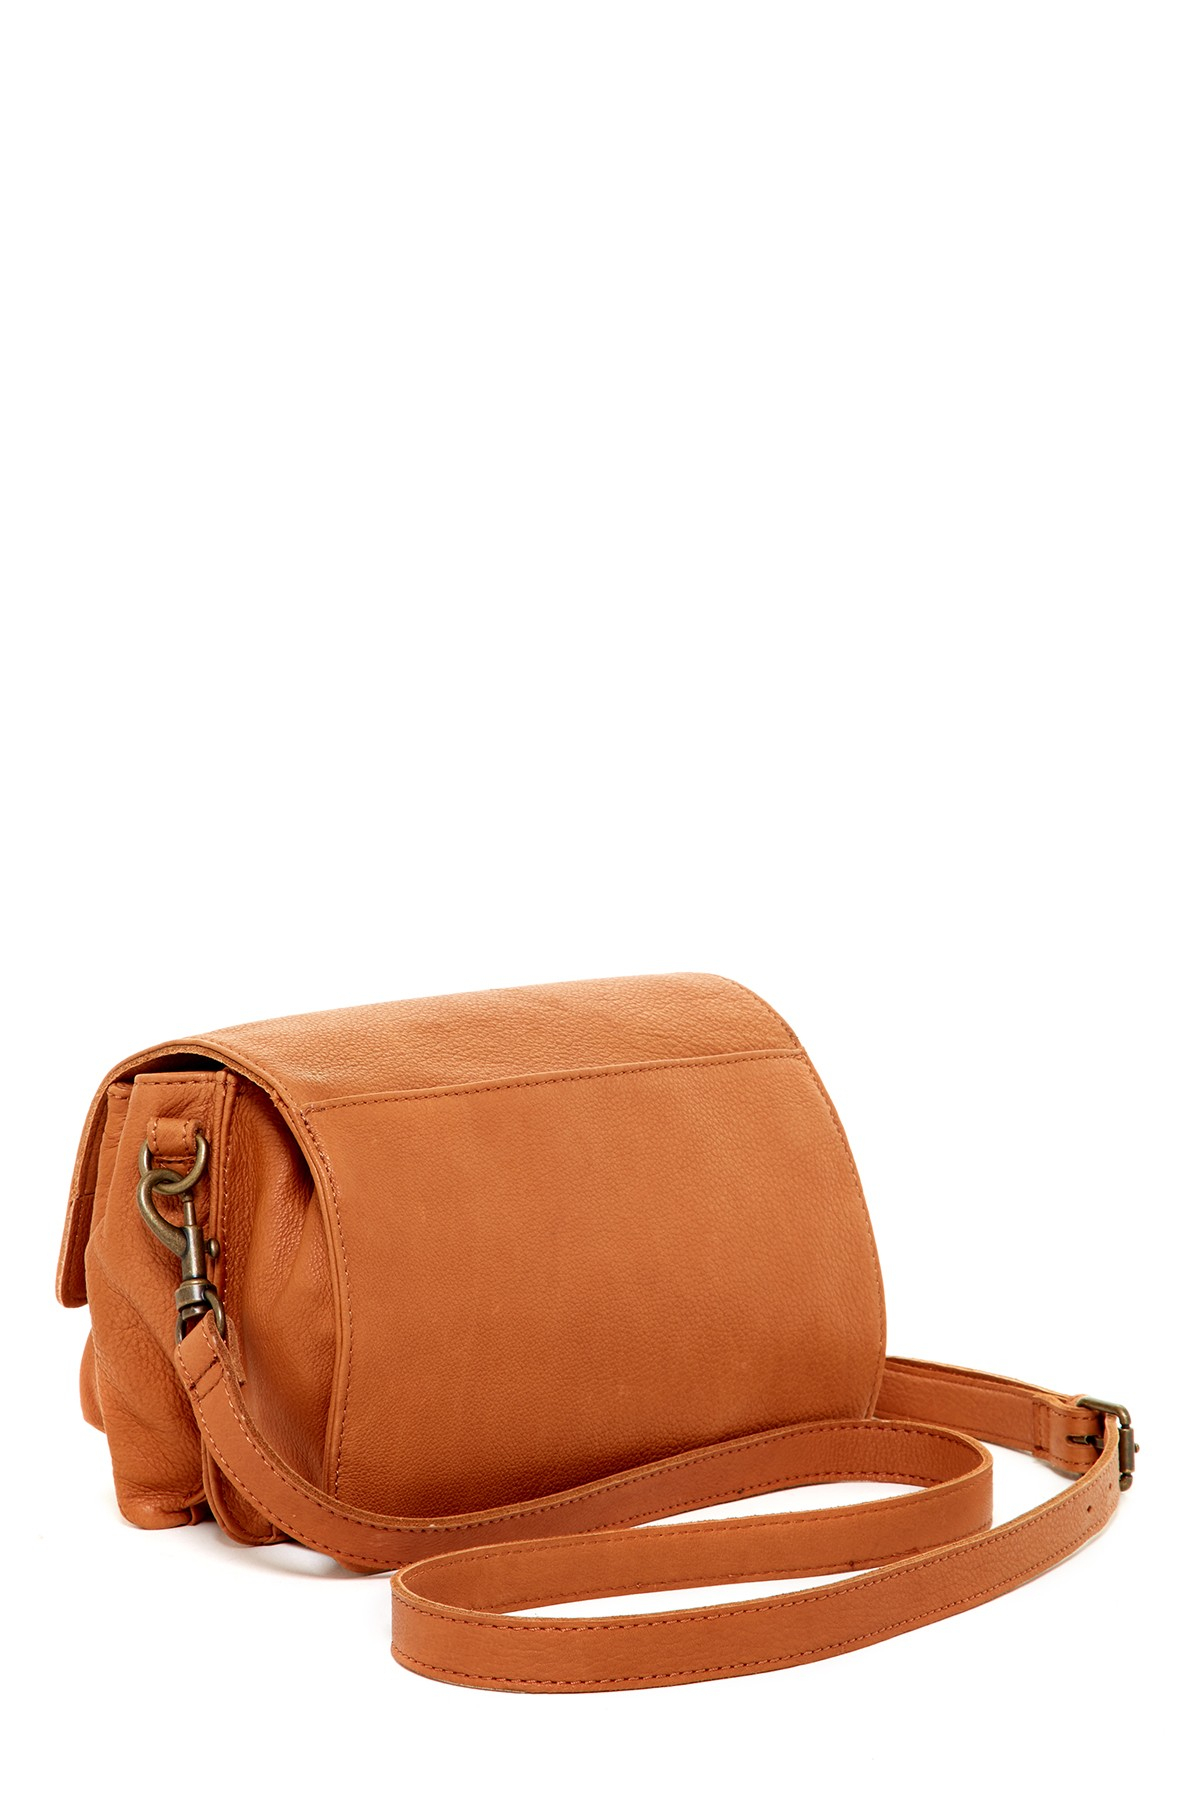 Lyst - Liebeskind Berlin Calista Vintage Leather Crossbody in Brown e66a4d5061